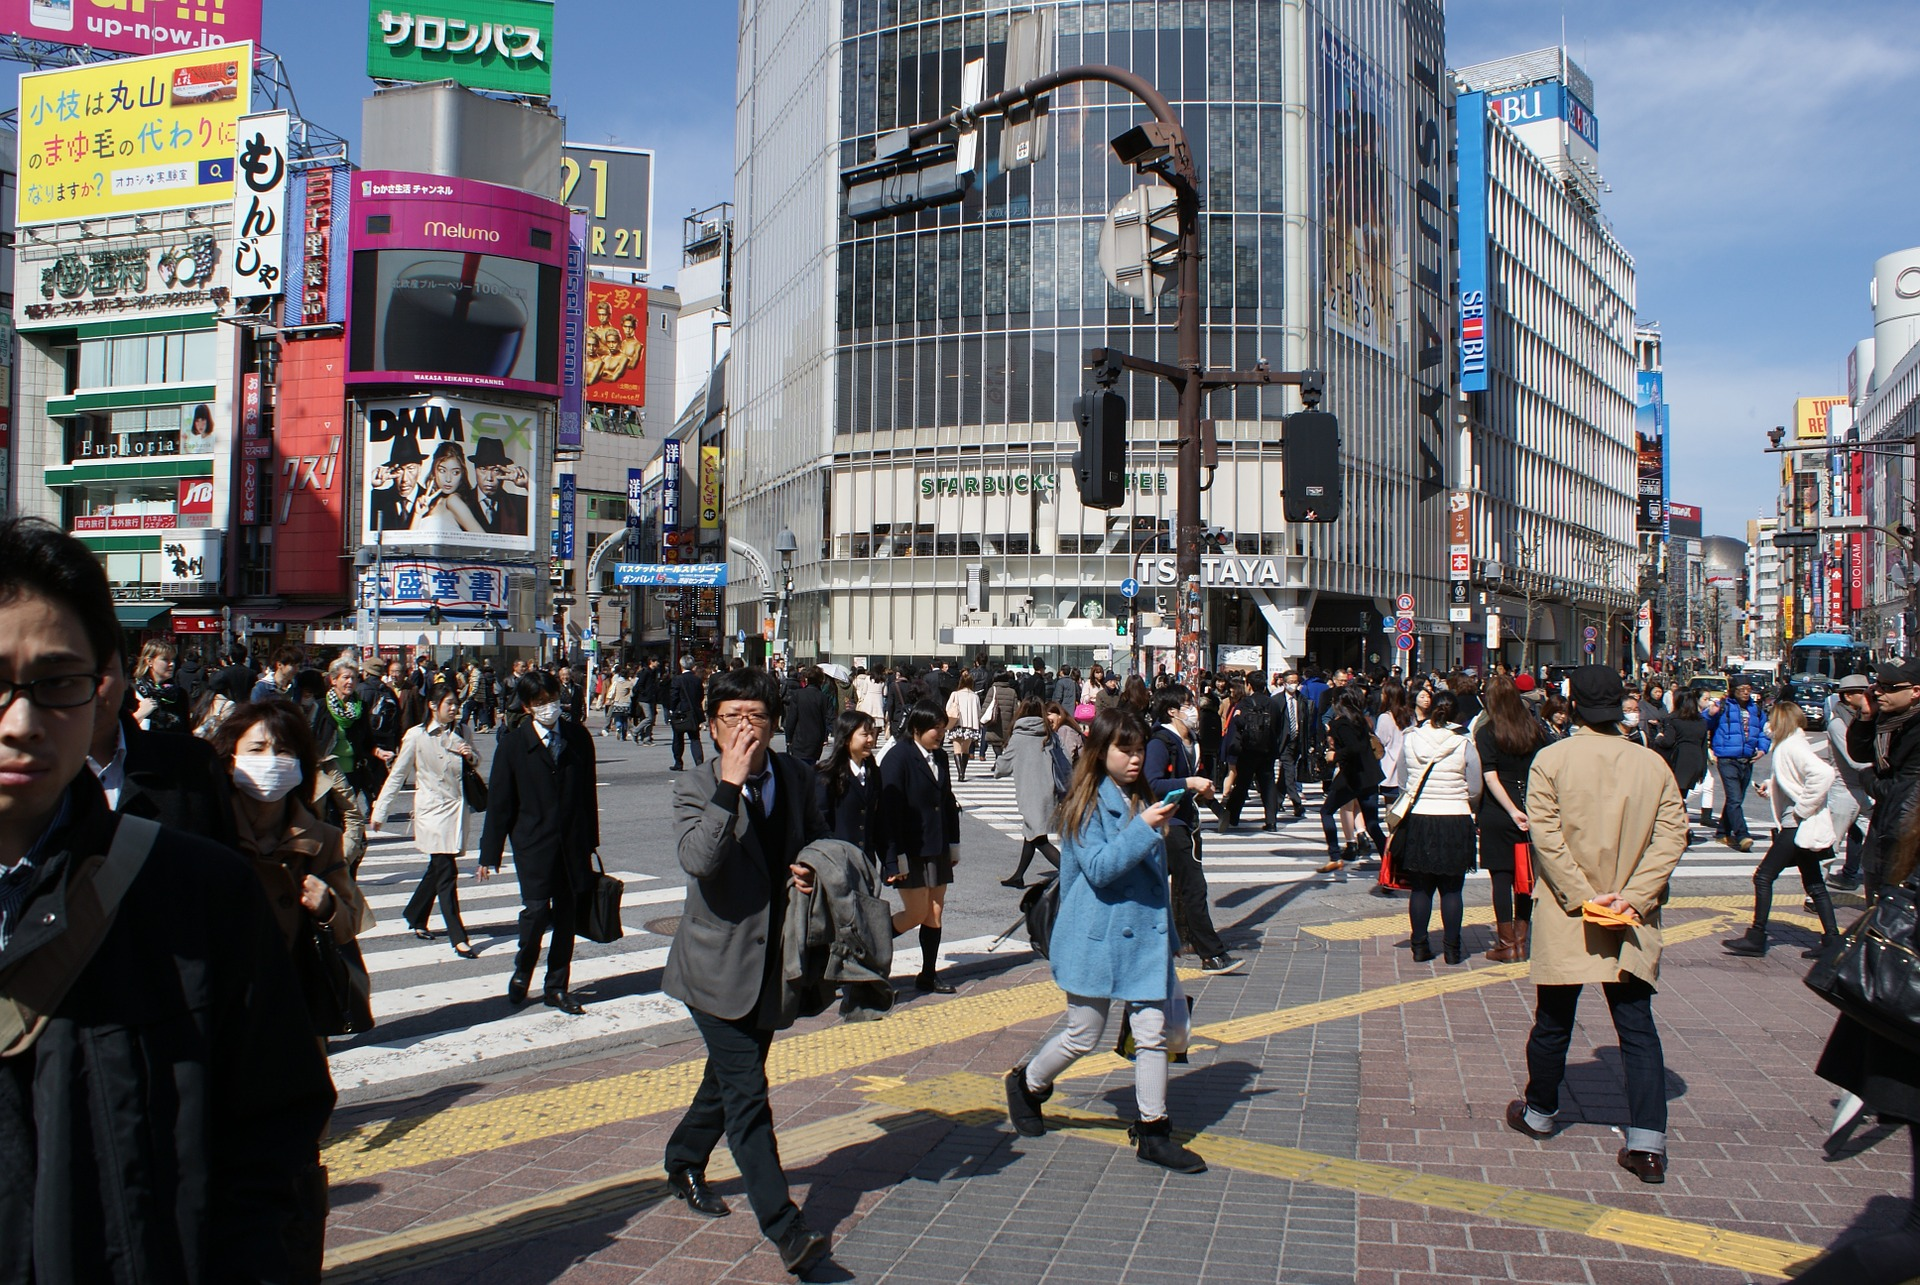 You've got three days in Tokyo, so don't forget about Shibuya!